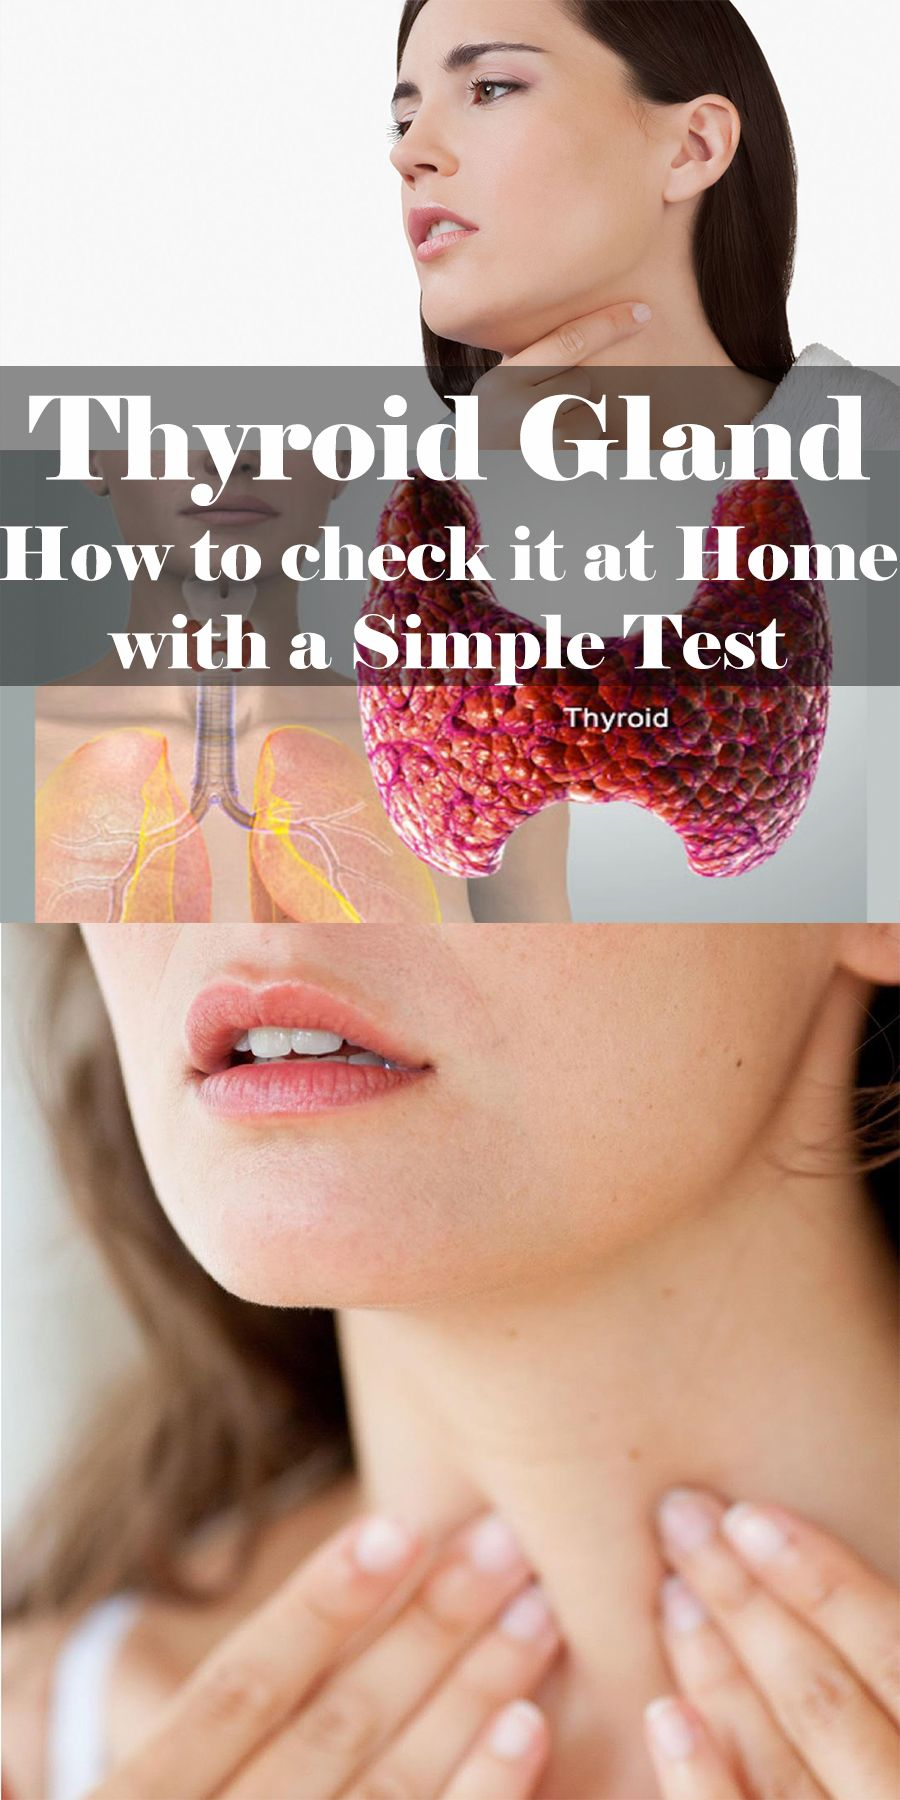 how to check for thyroid problems at home